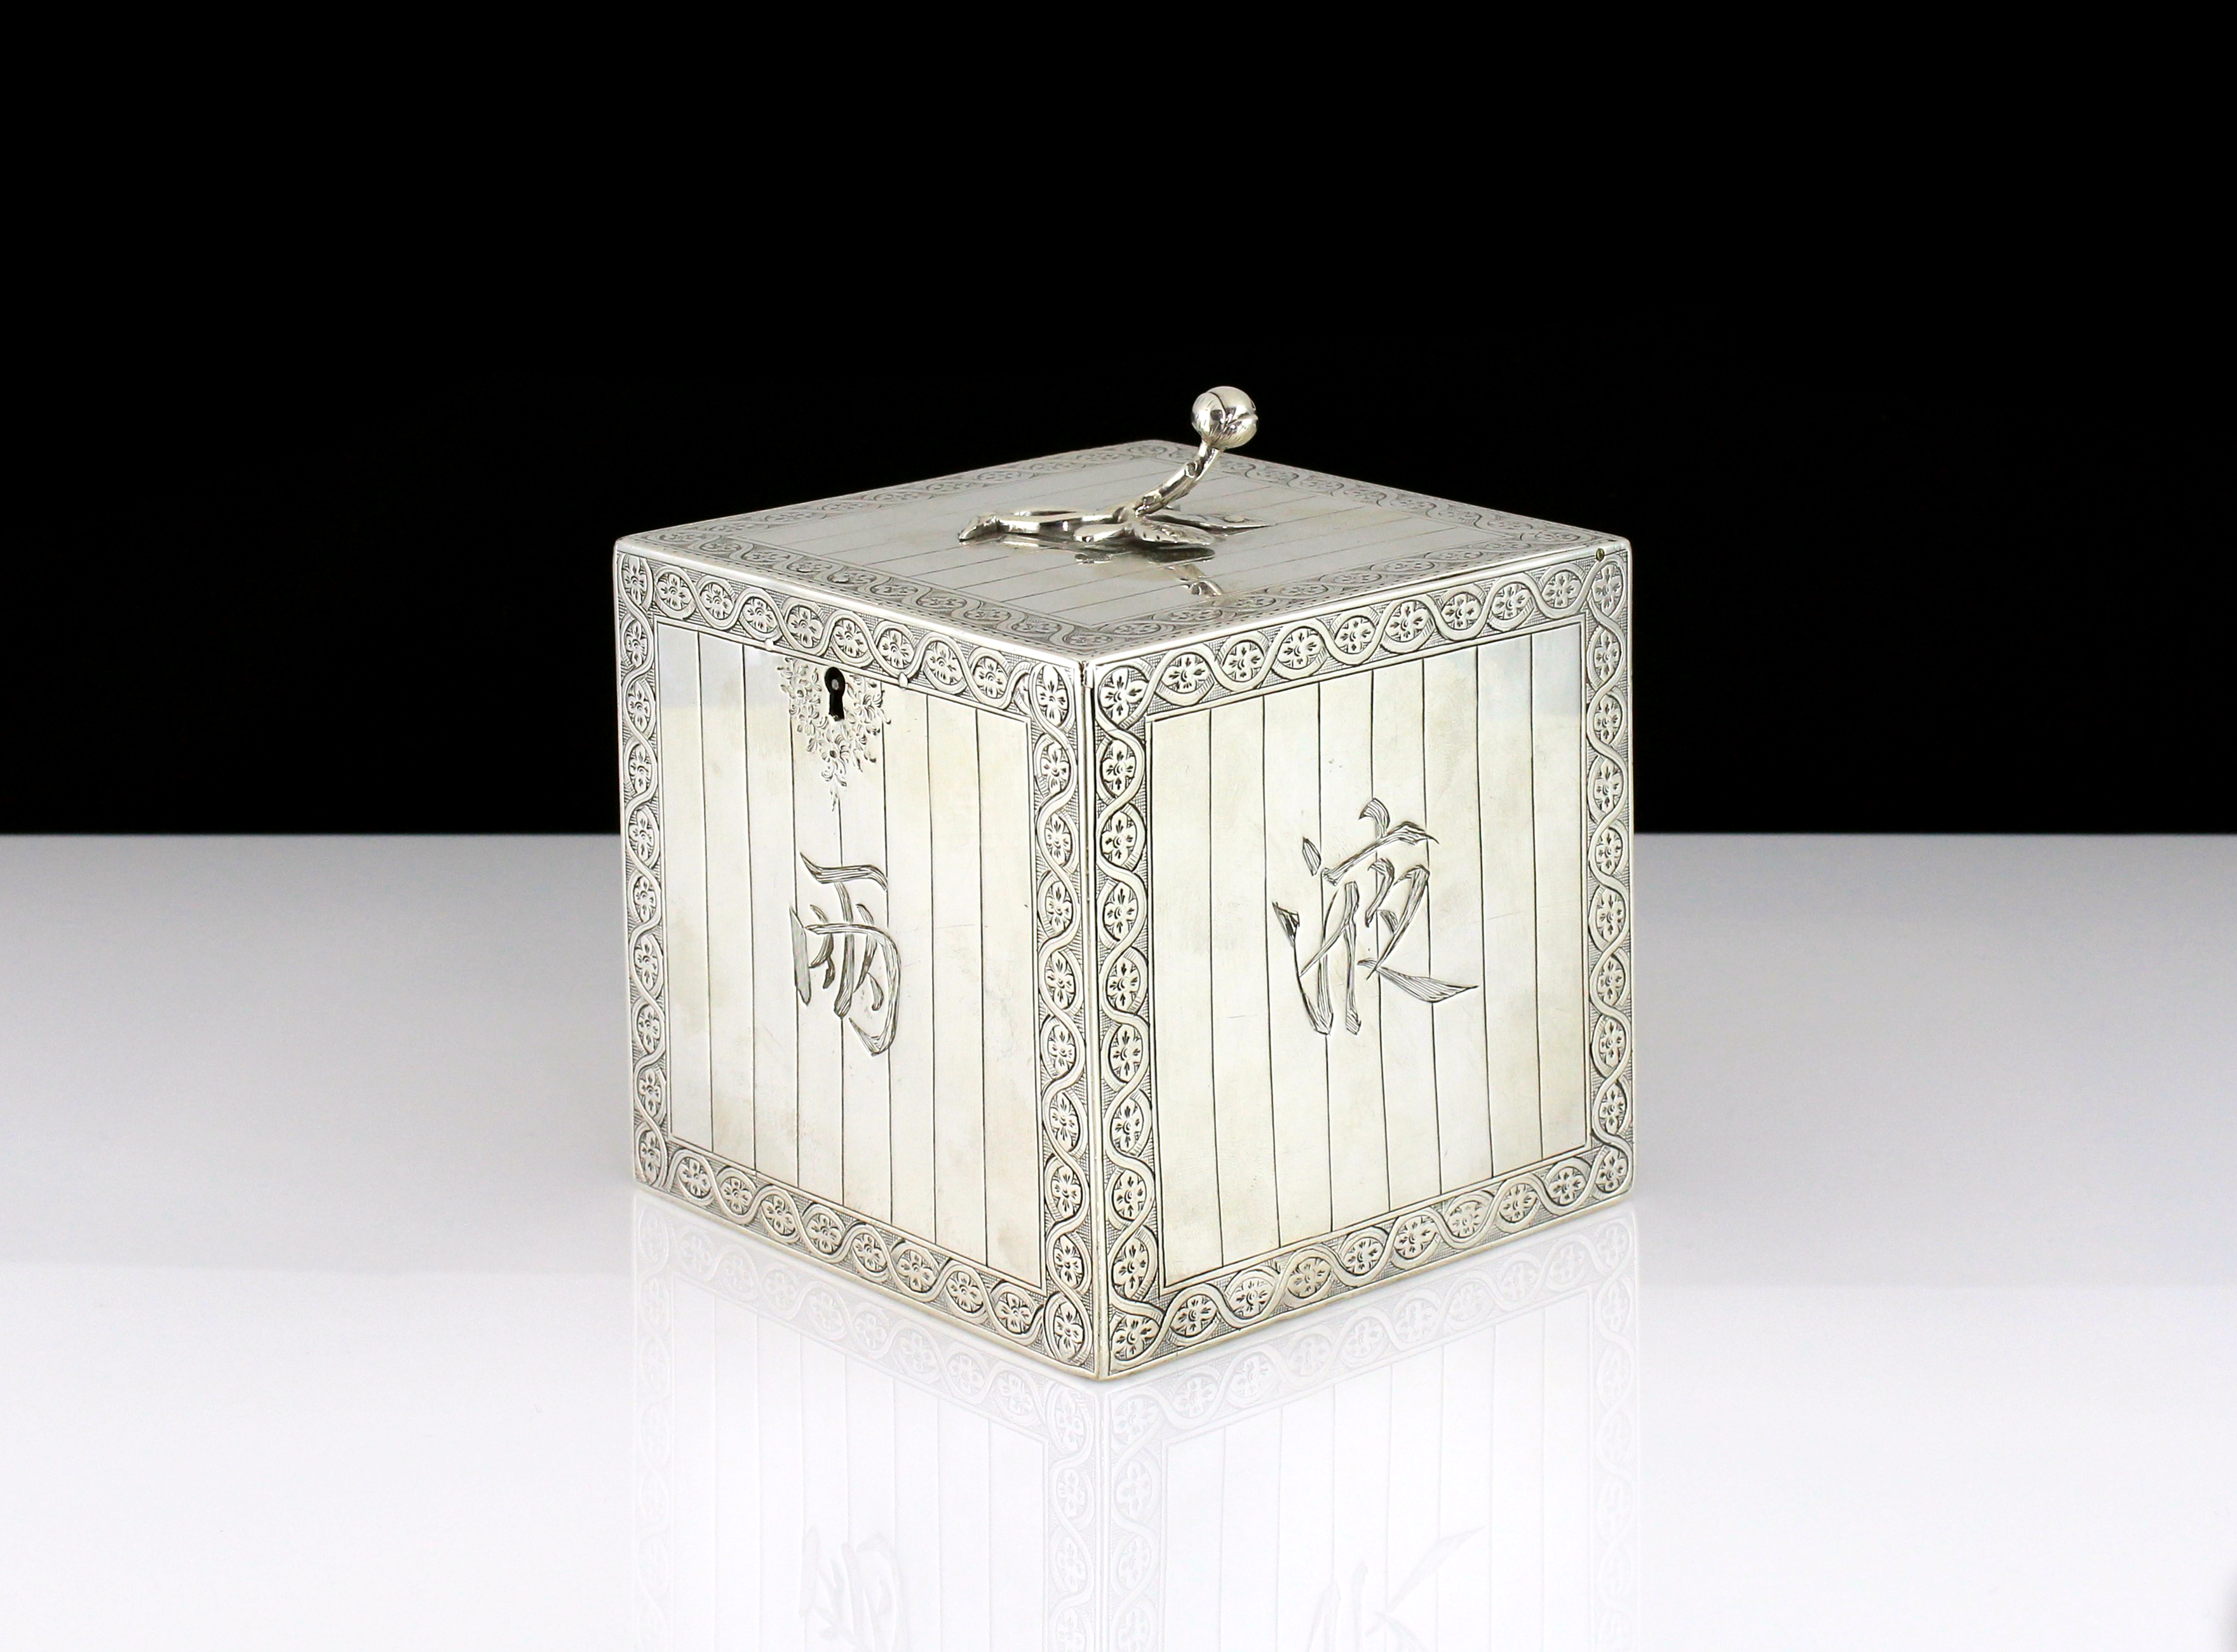 A rare antique George III Sterling Silver chinoiserie tea caddy by Aaron Lestourgeon, London 1771